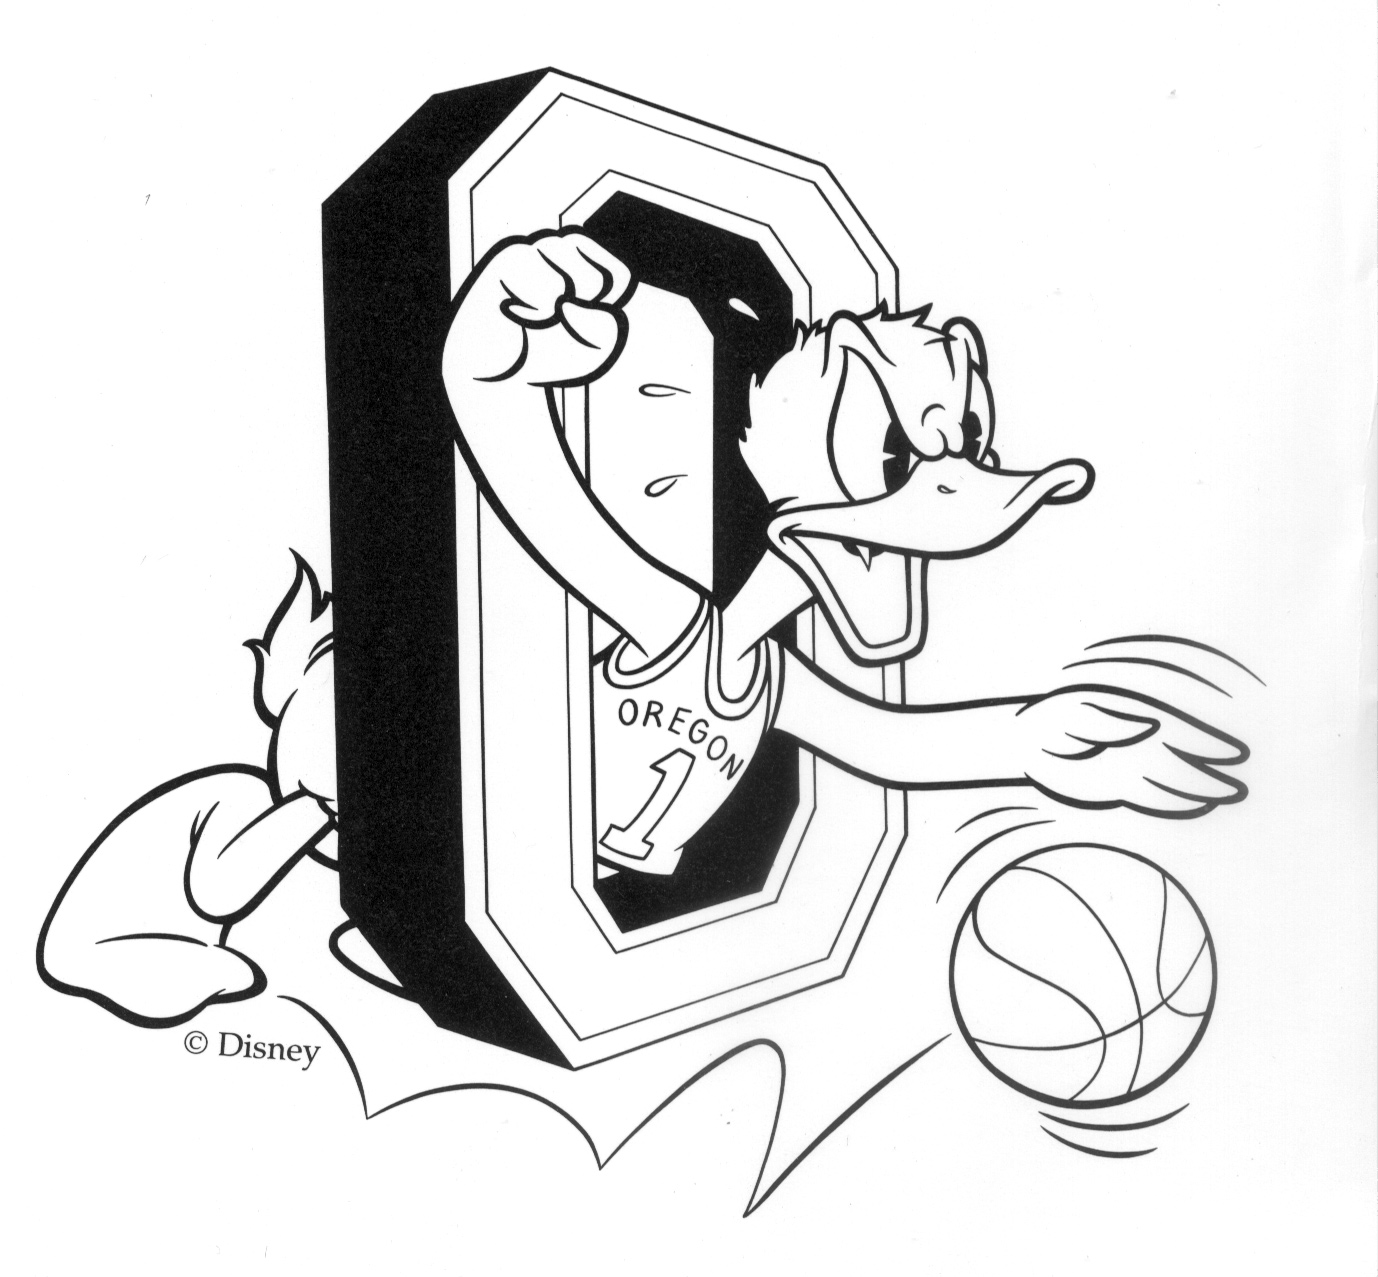 Cool Basketball Drawings Pictures To Pin On Pinterest - PinsDaddy